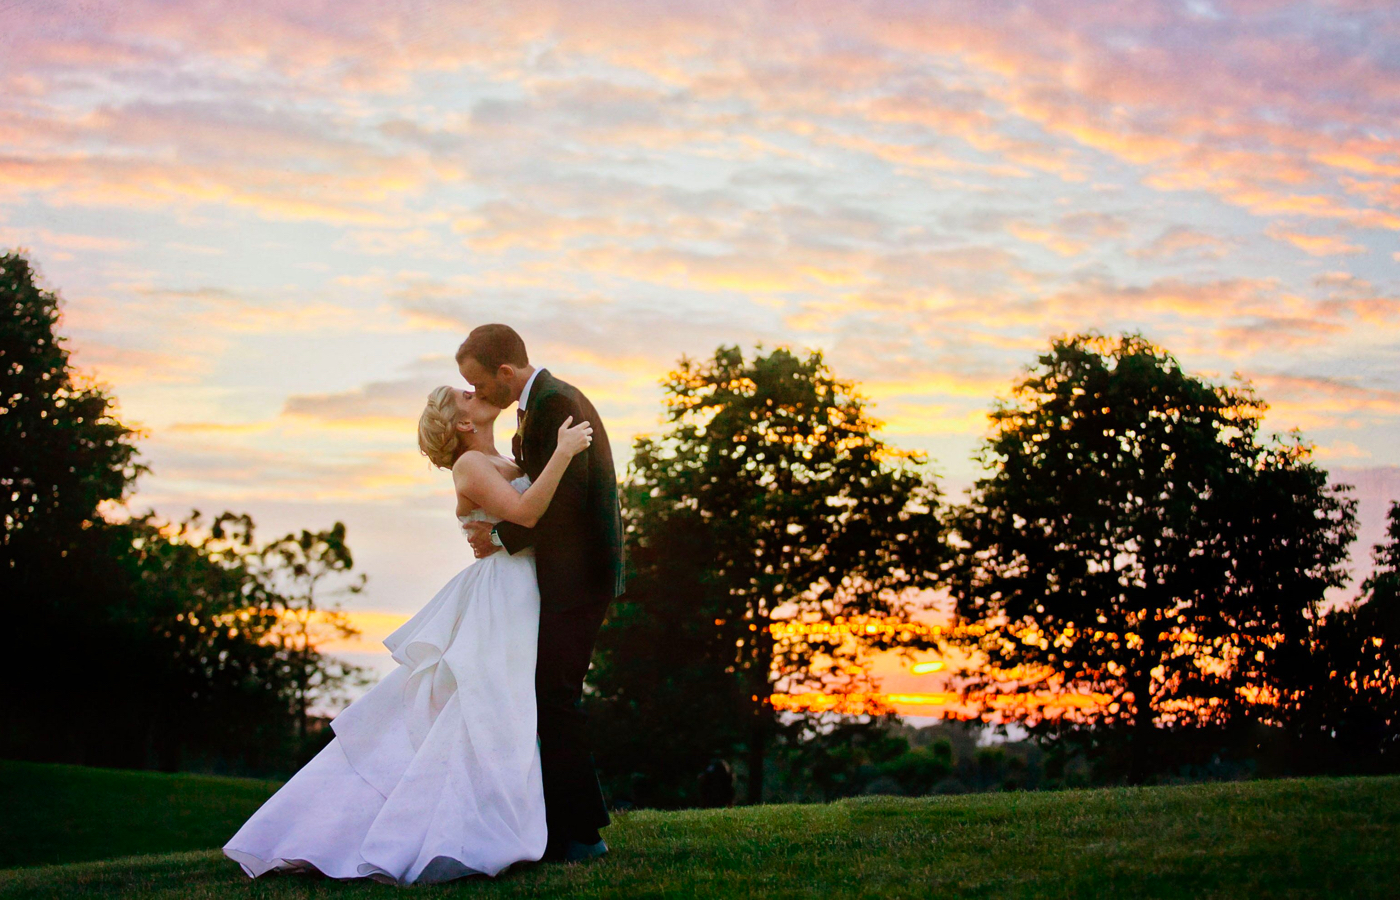 Bride and groom in open field wedding Chicago event space